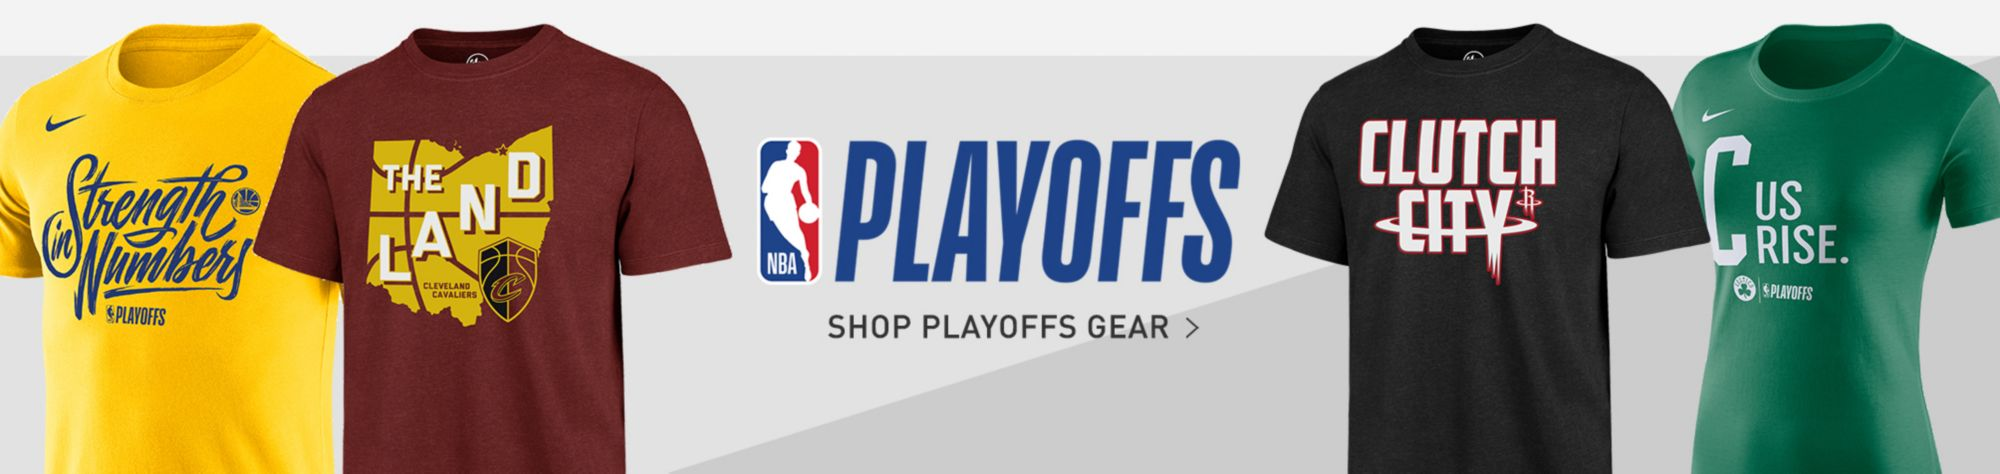 NBA Playoff Gear